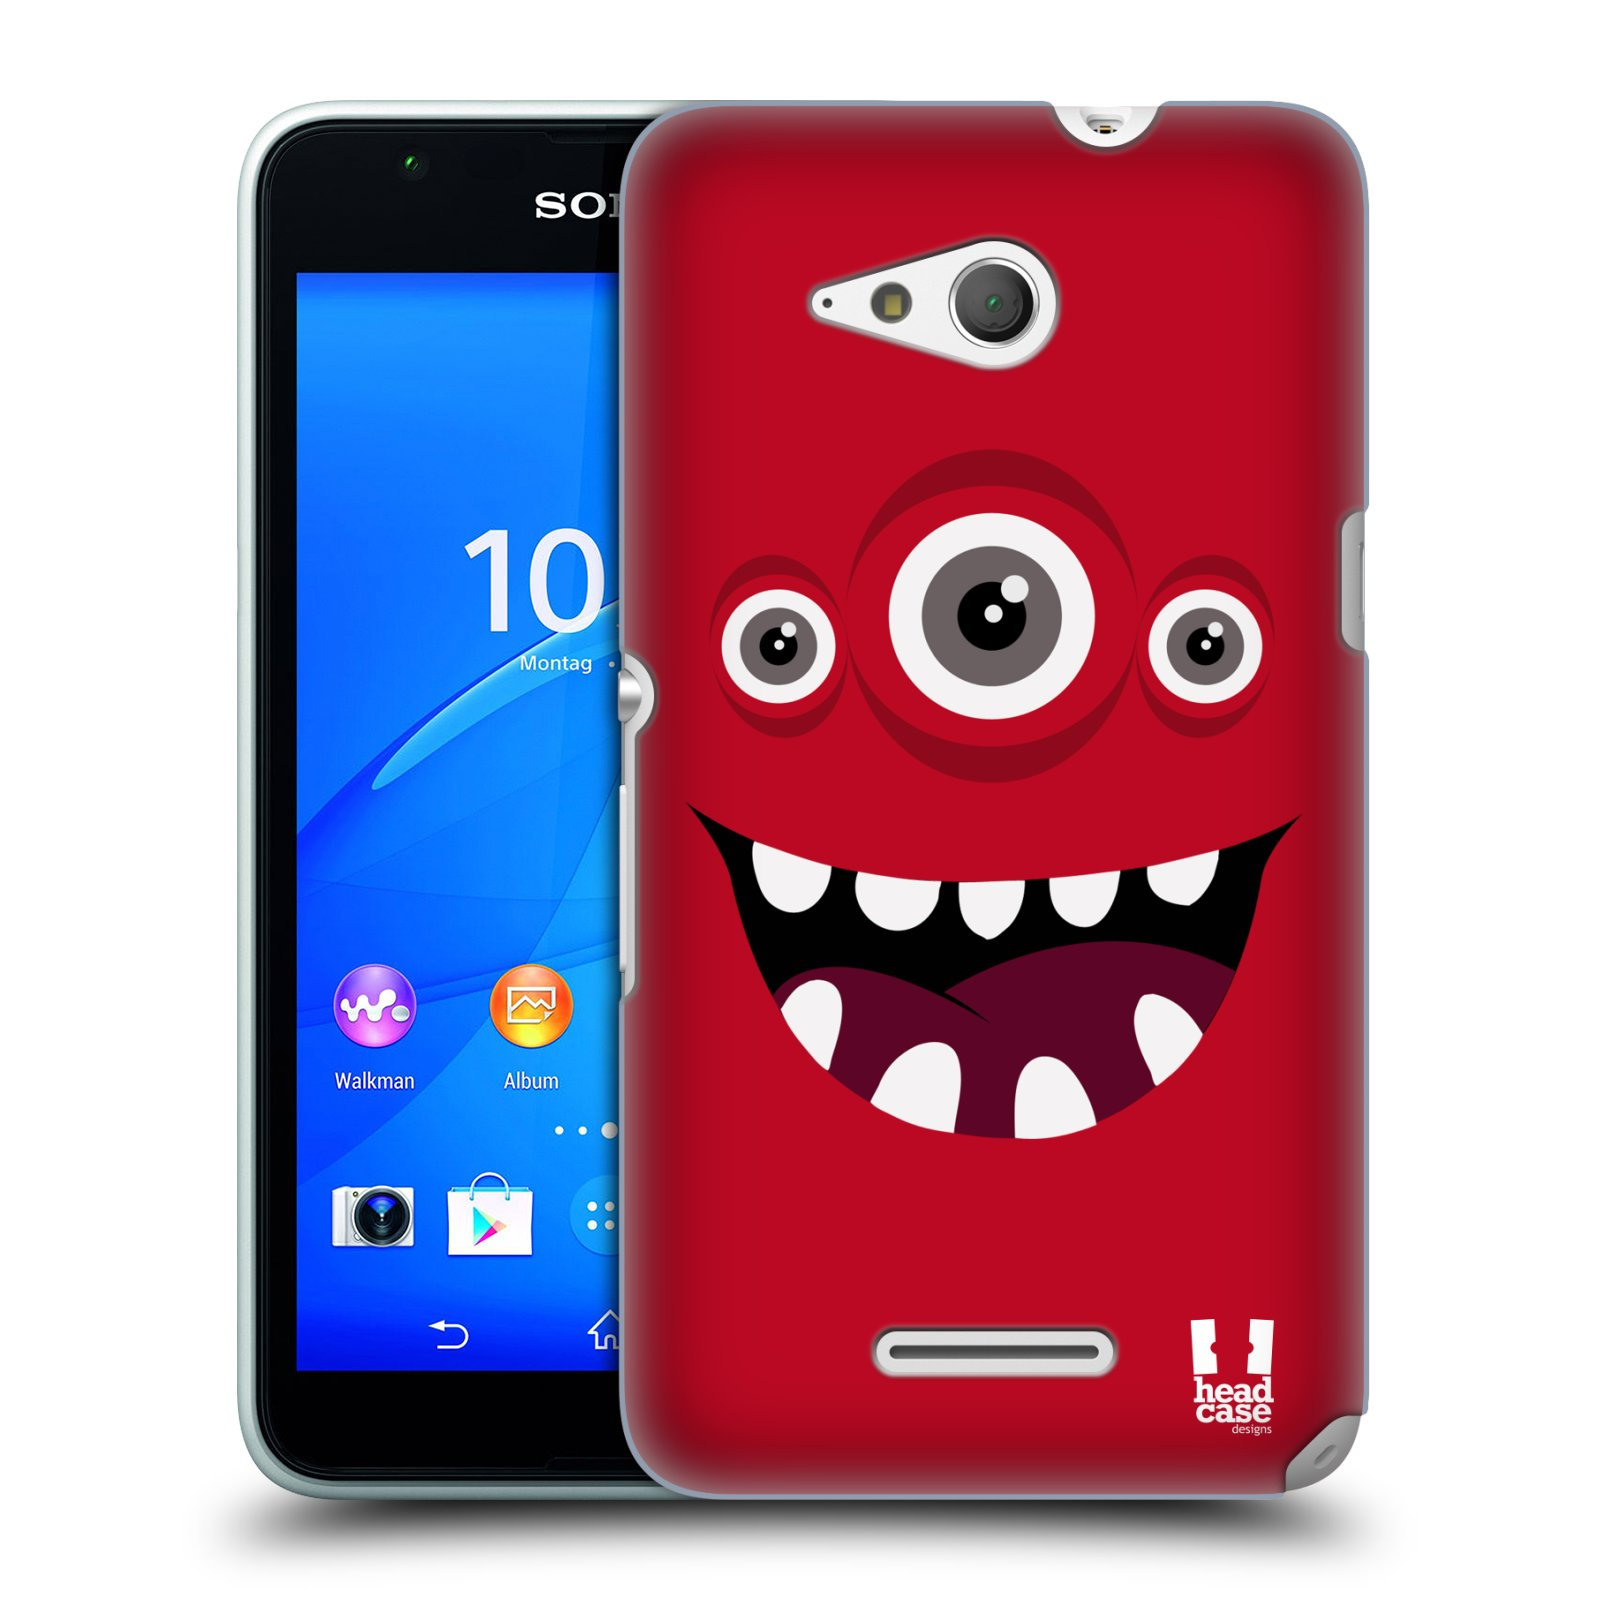 HEAD CASE DESIGNS JOLLY MONSTERS HARD BACK CASE FOR SONY XPERIA E4G